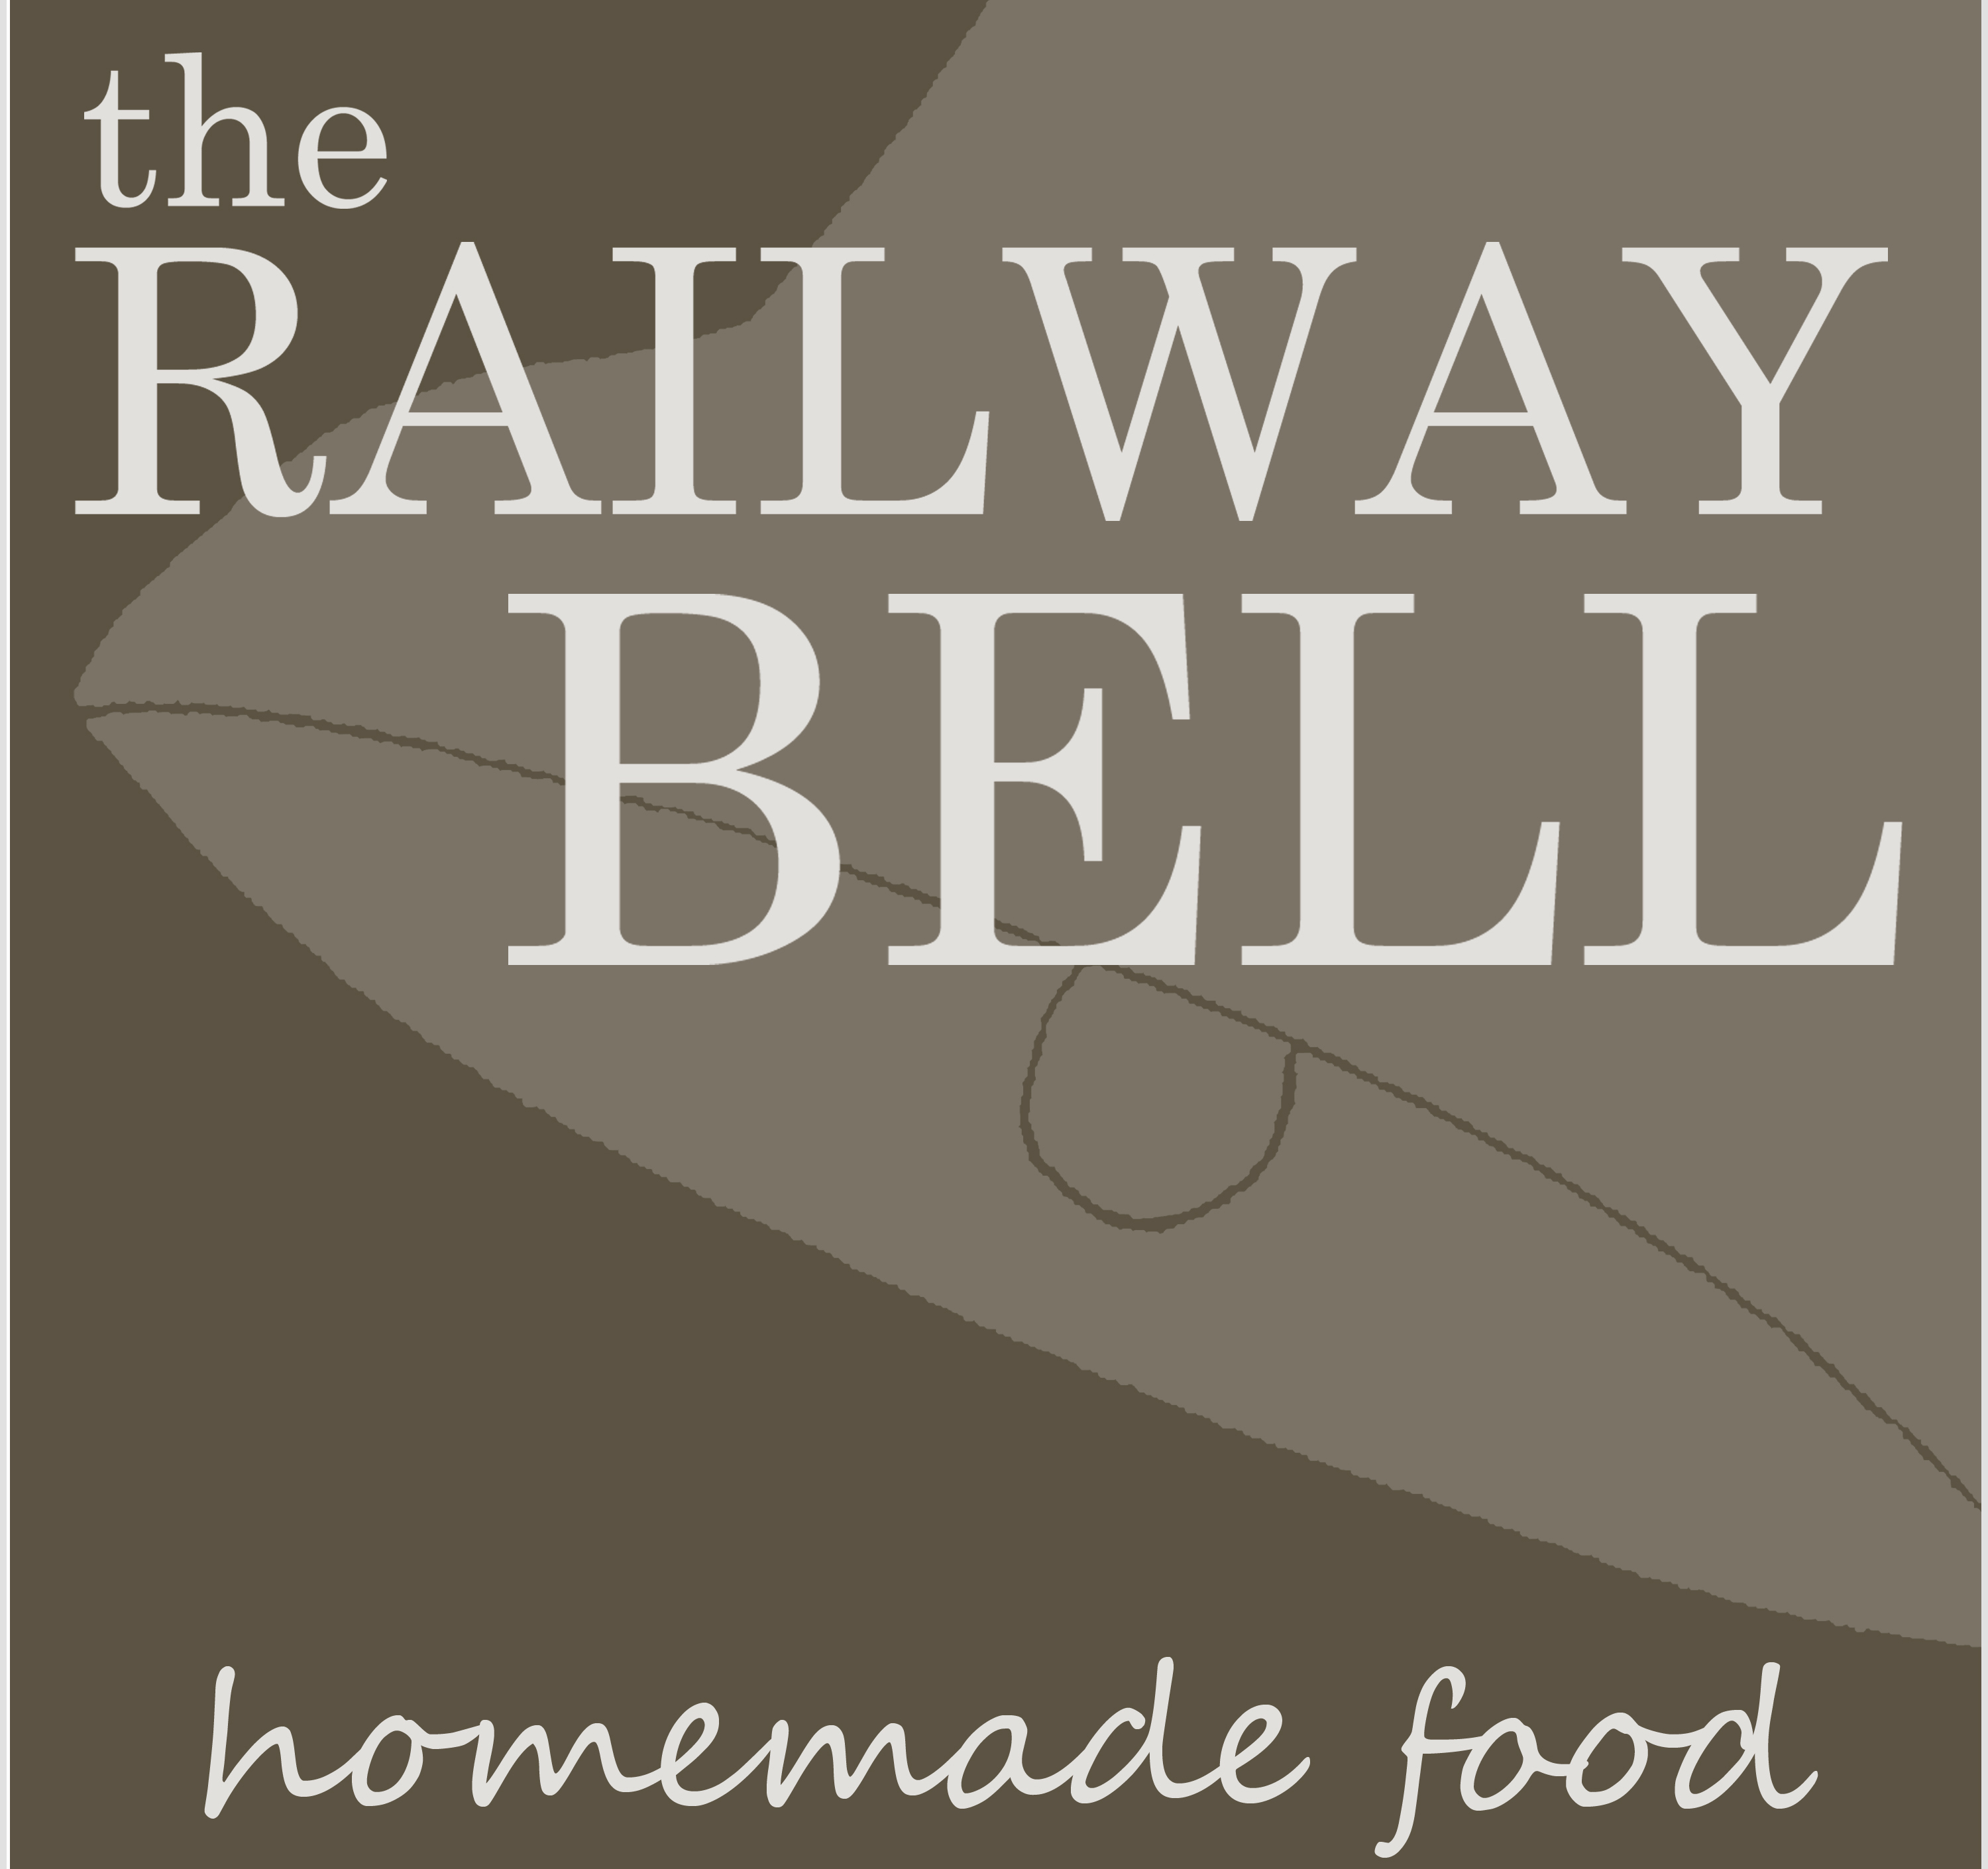 The Railway Bell